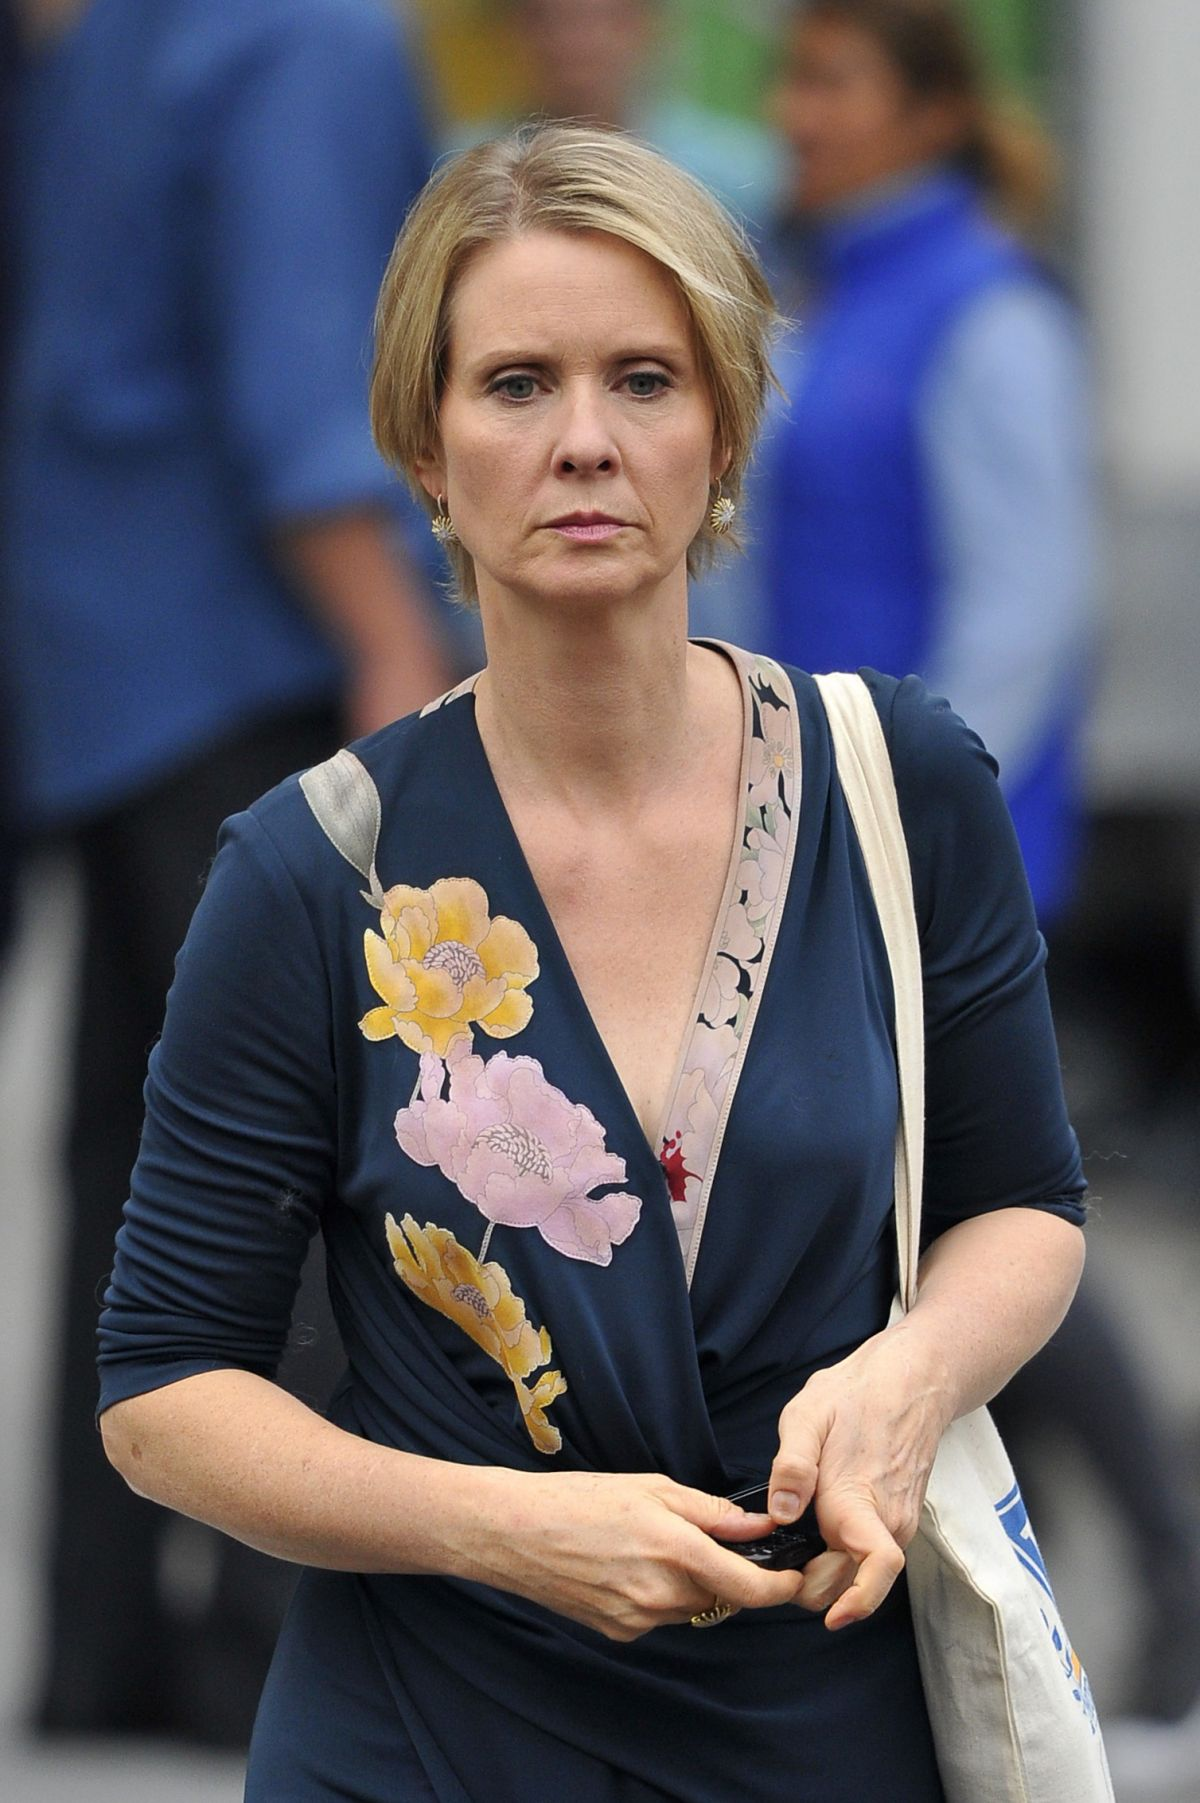 cynthia nixon - photo #18